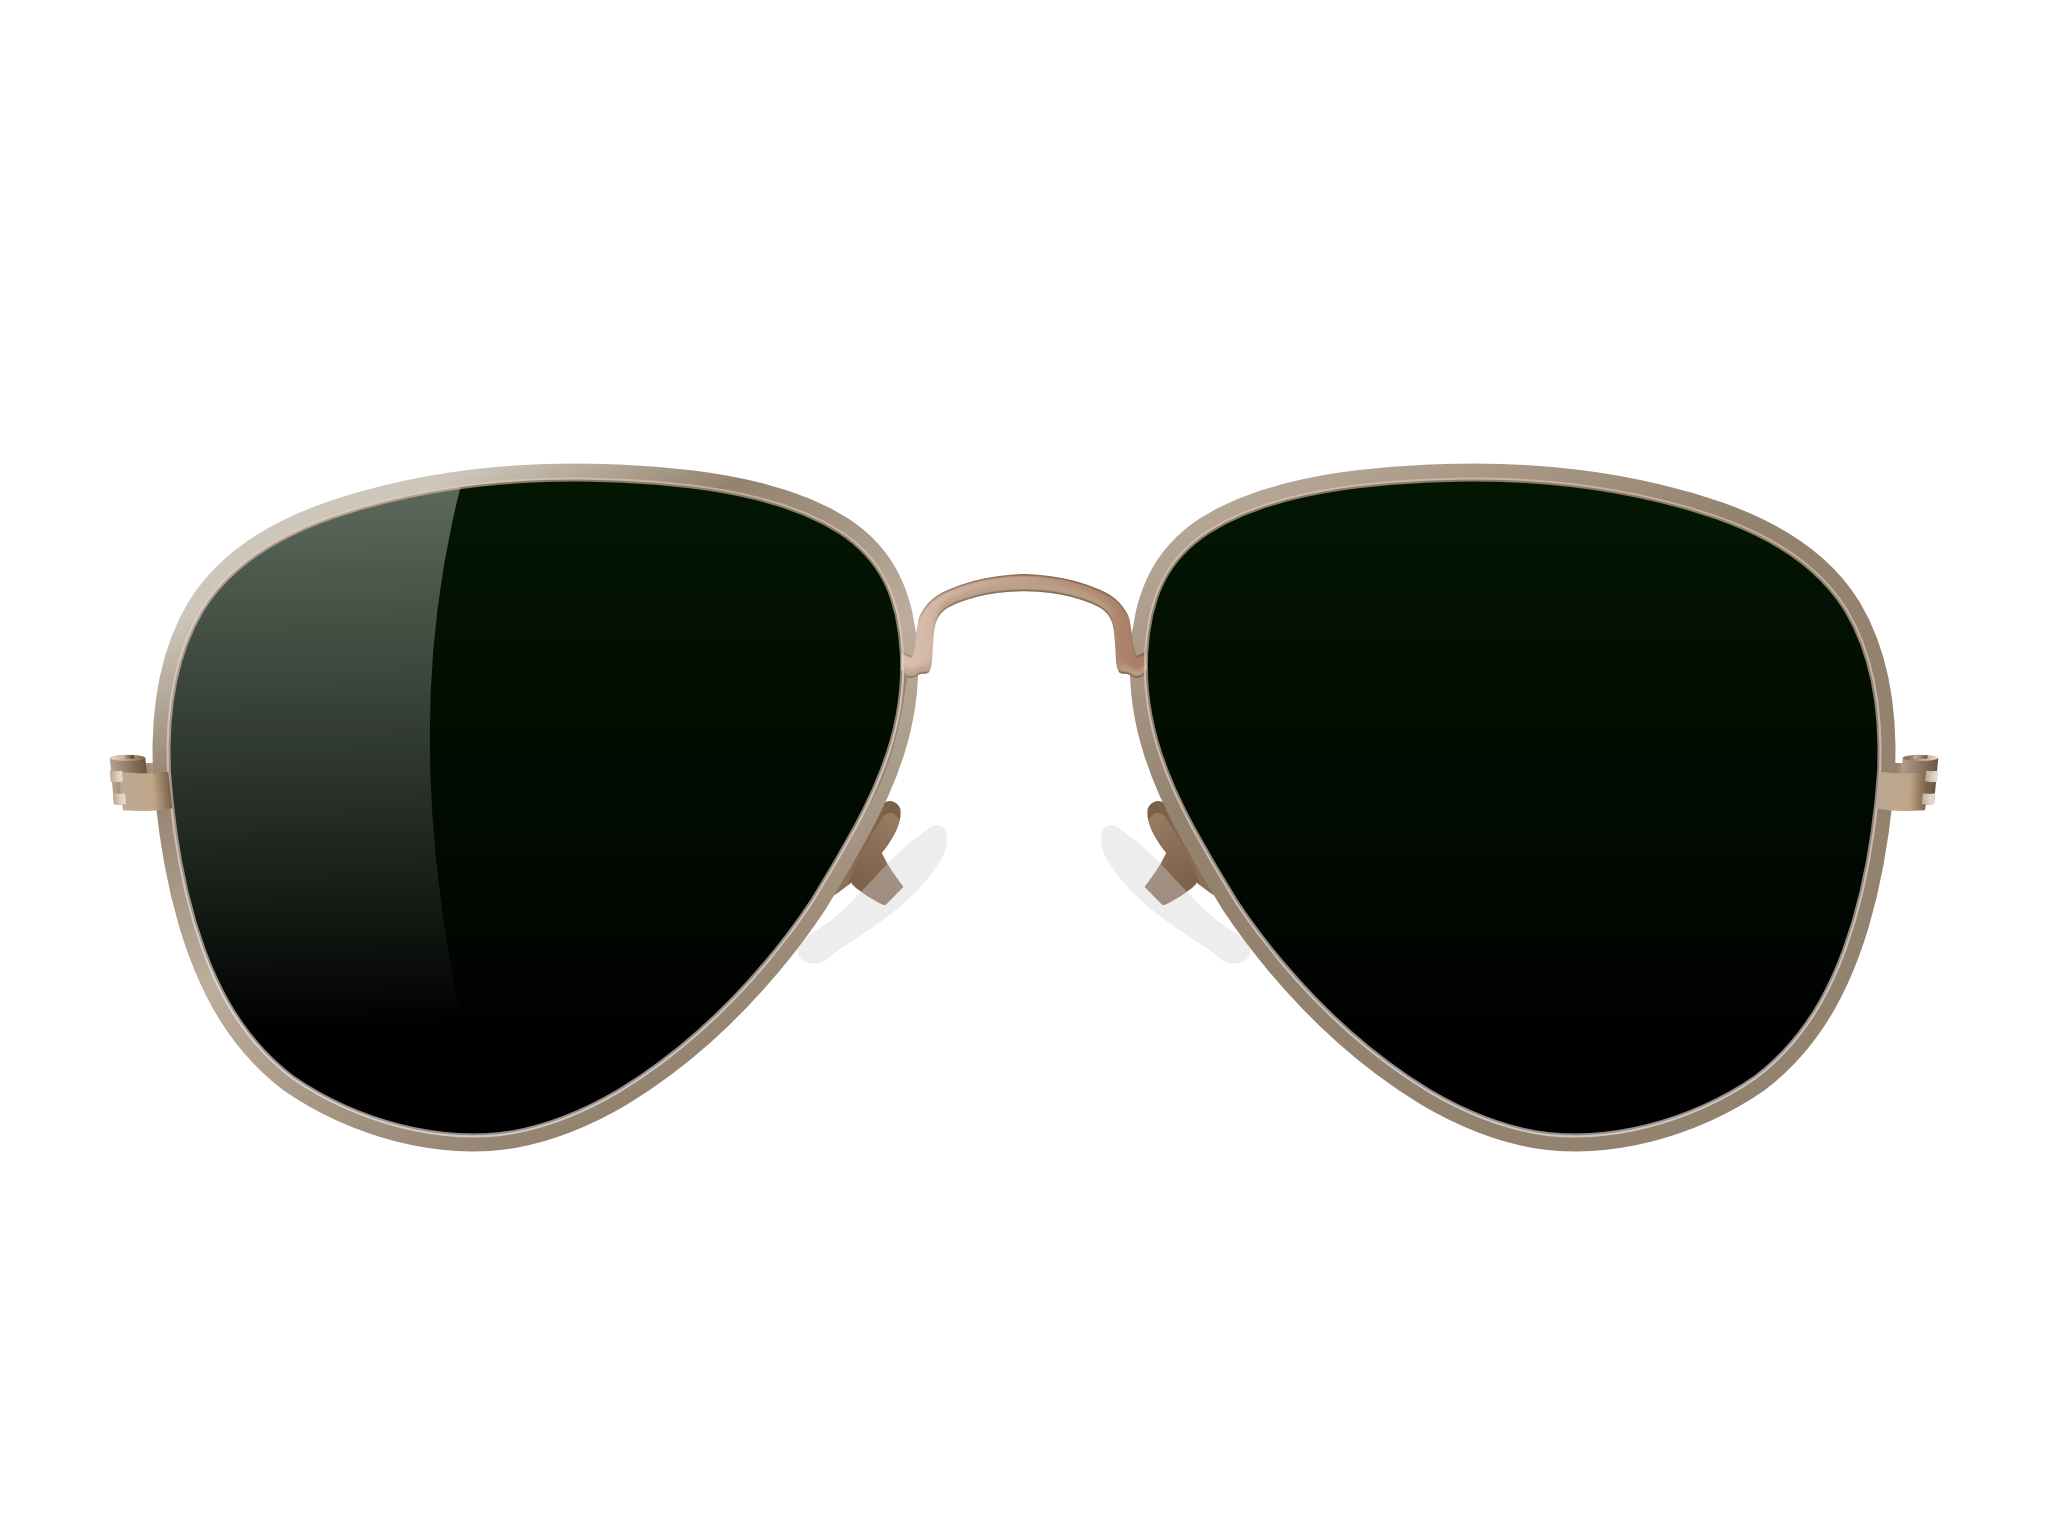 Sunglasses PNG - 22877